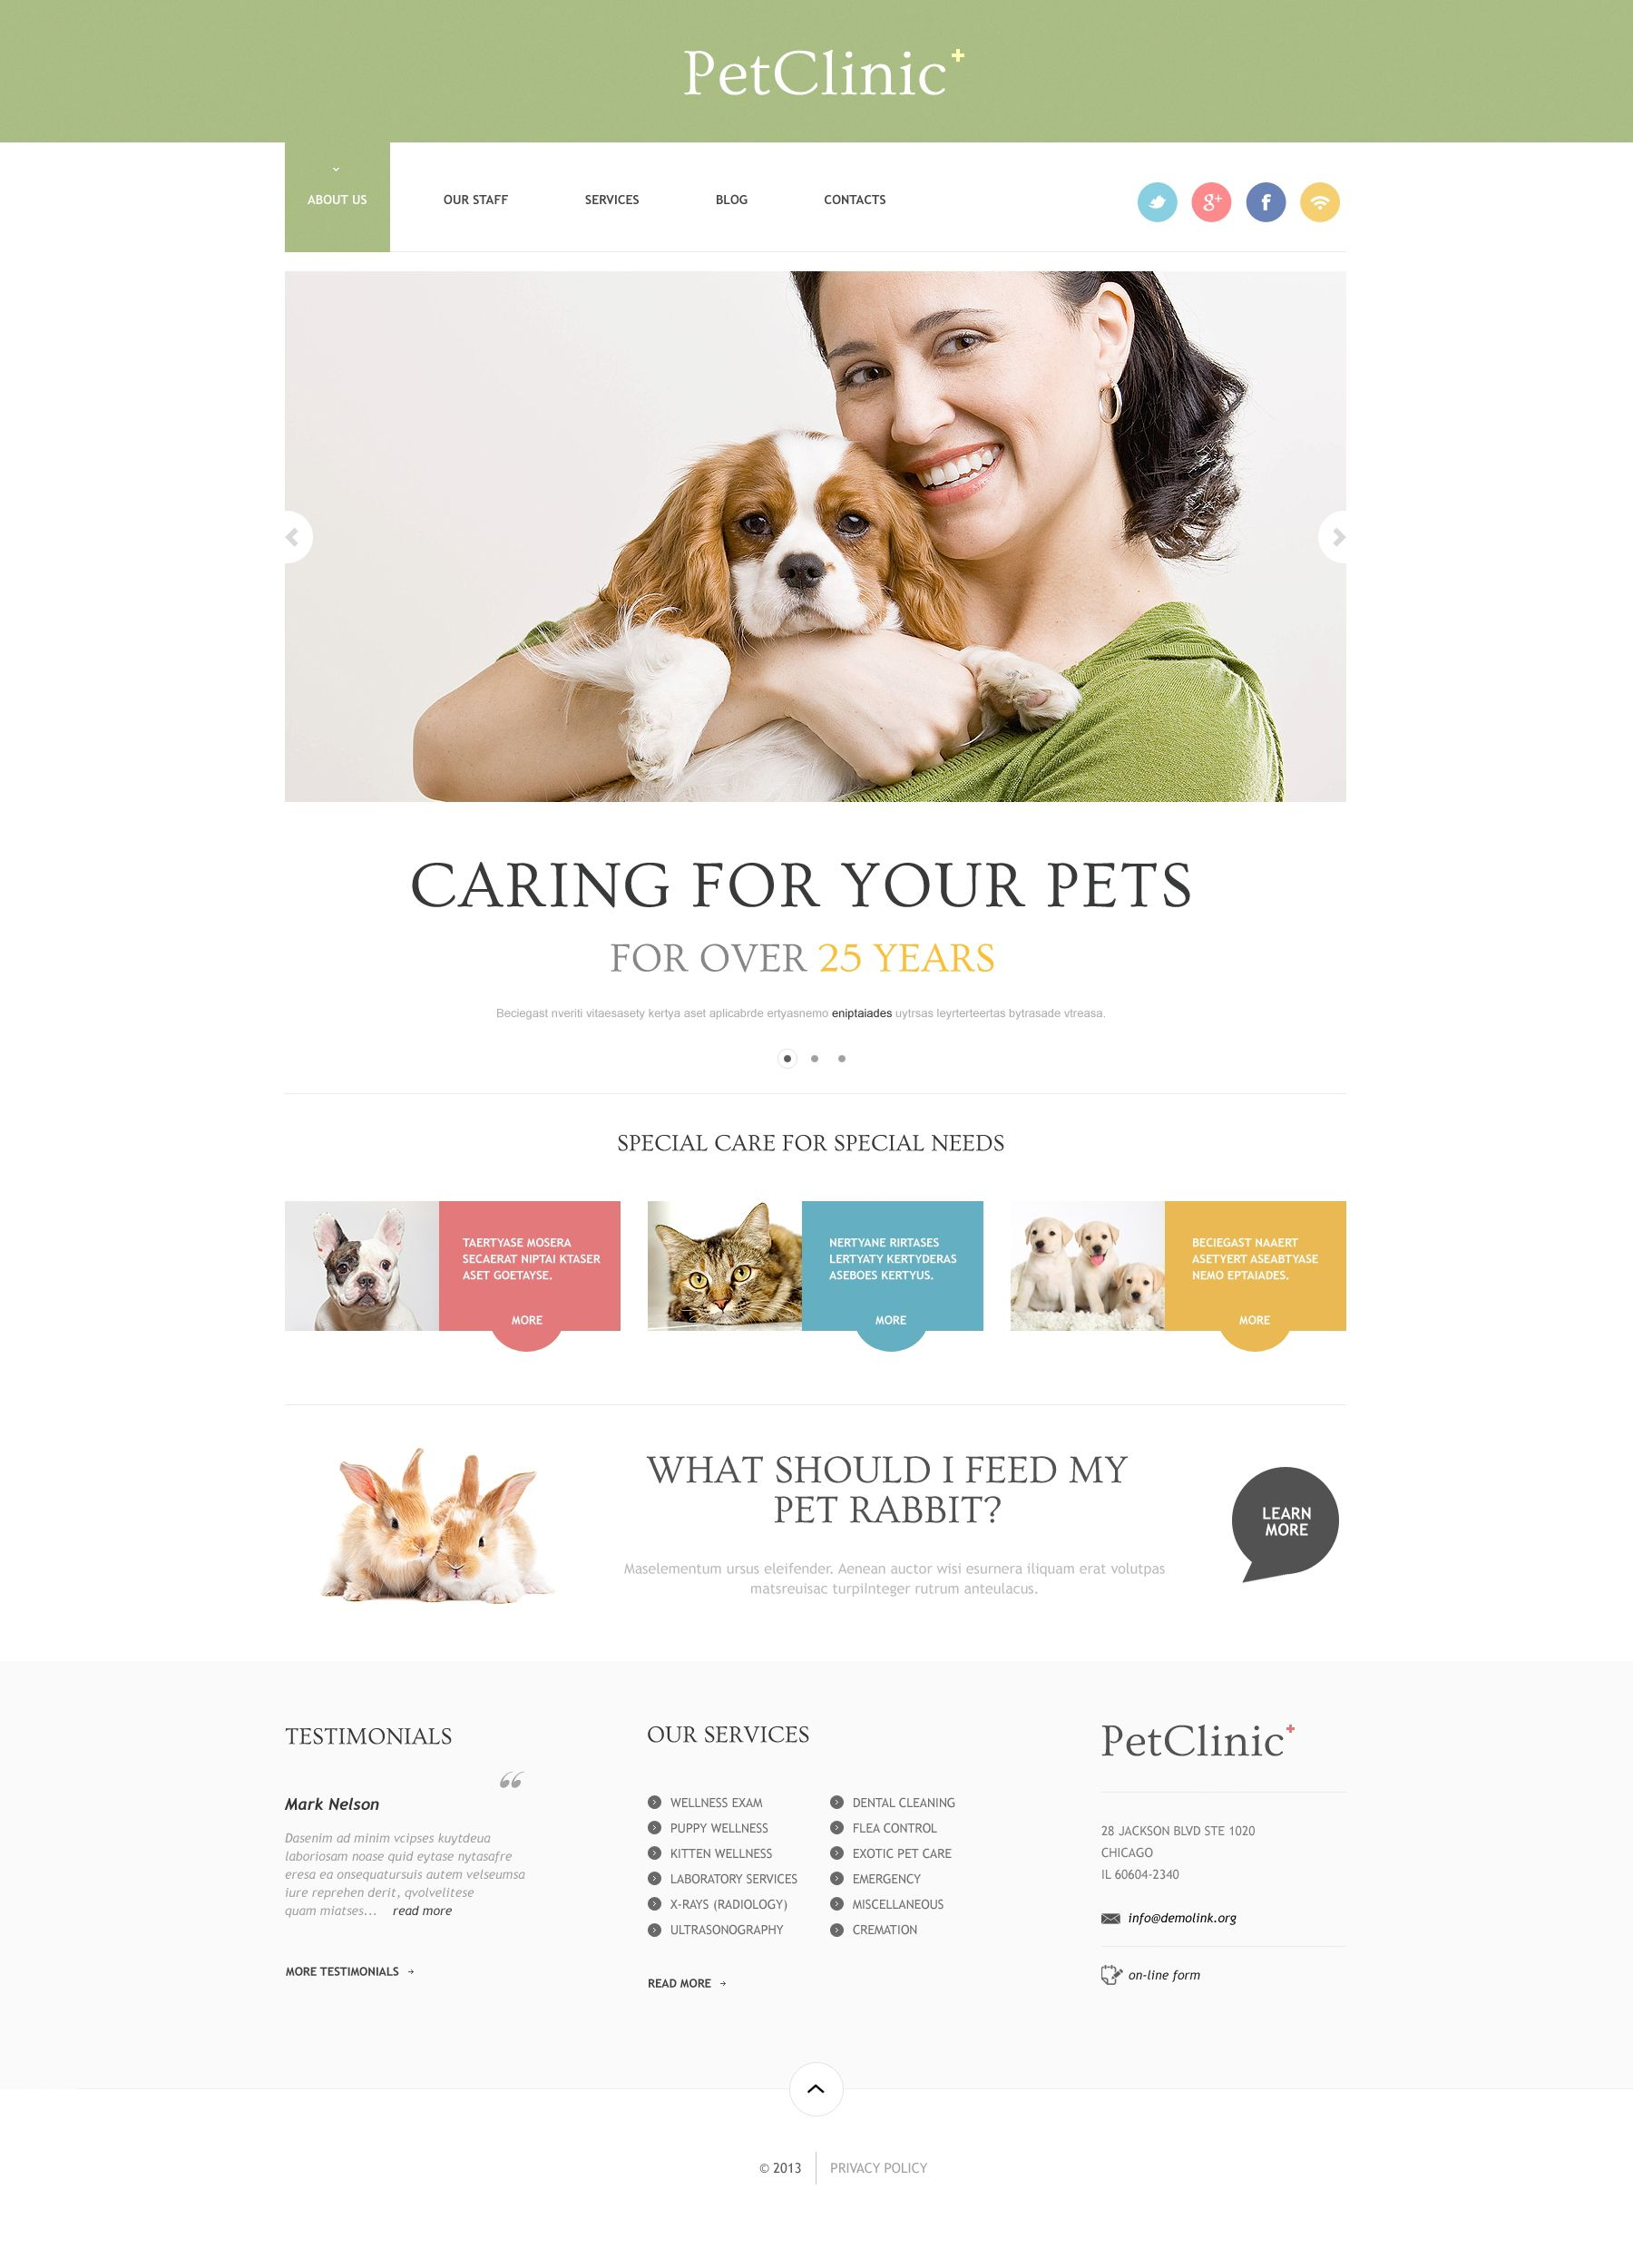 Website Design Template 47407 Center Veterinarian Pets Hospital Health Cat Dog Doctors Puppy Kitten Clinical Veterinary Tips Feed Medicine Staff Services Breed